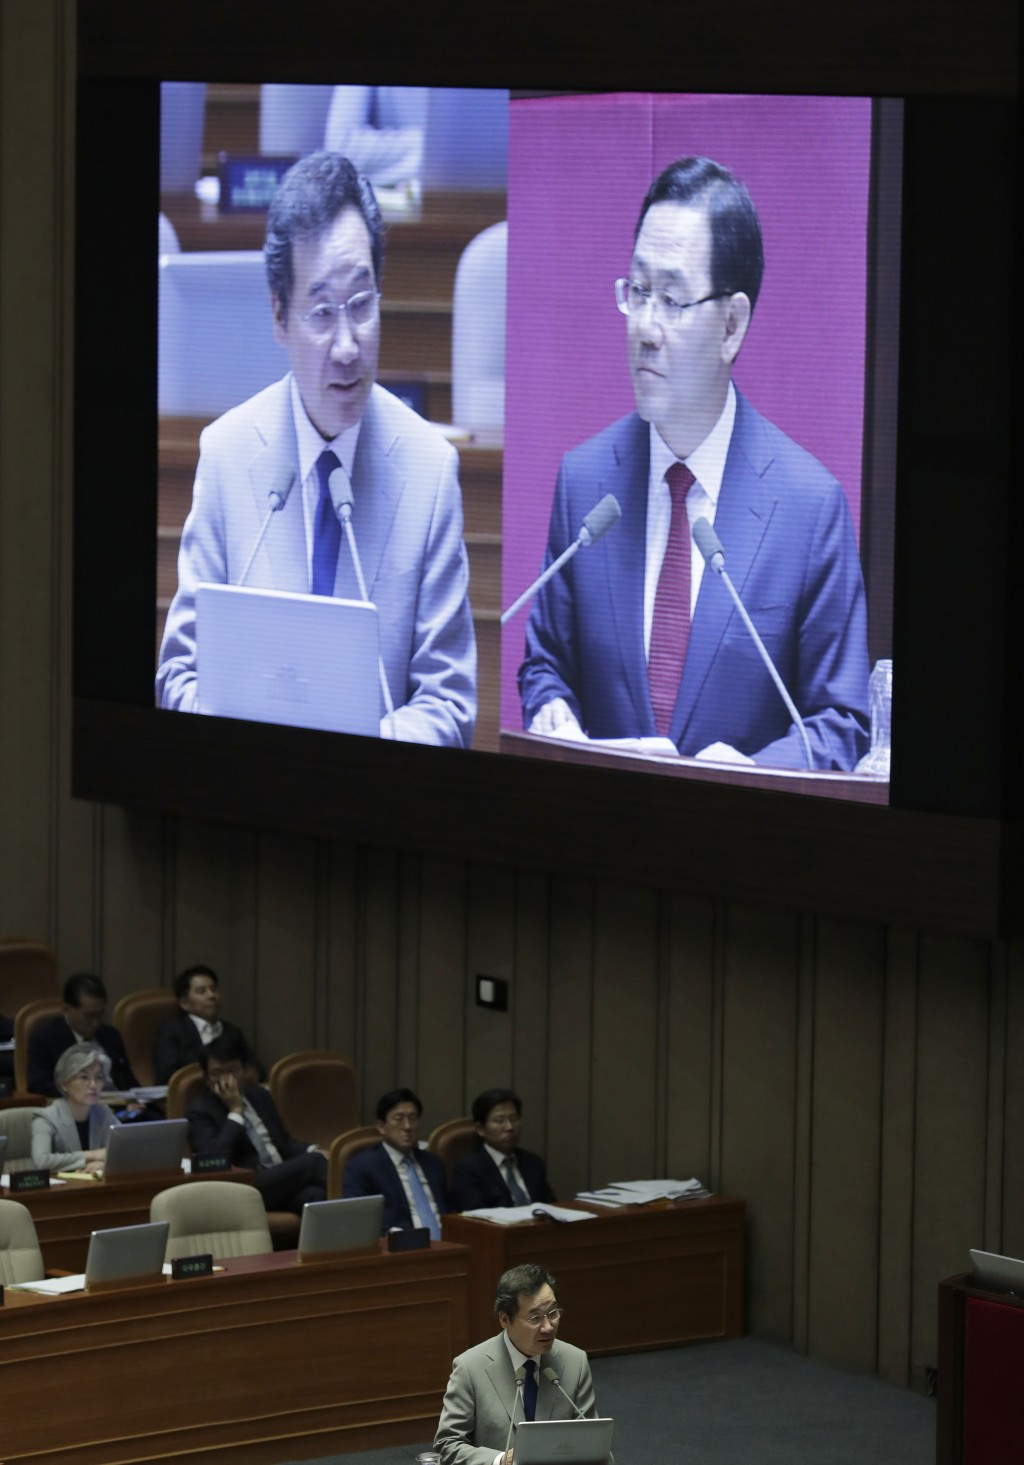 South Korean Prime Minister Lee Nak-yon, bottom, answers questions during a plenary session at National Assembly in Seoul, South Korea, Tuesday, July